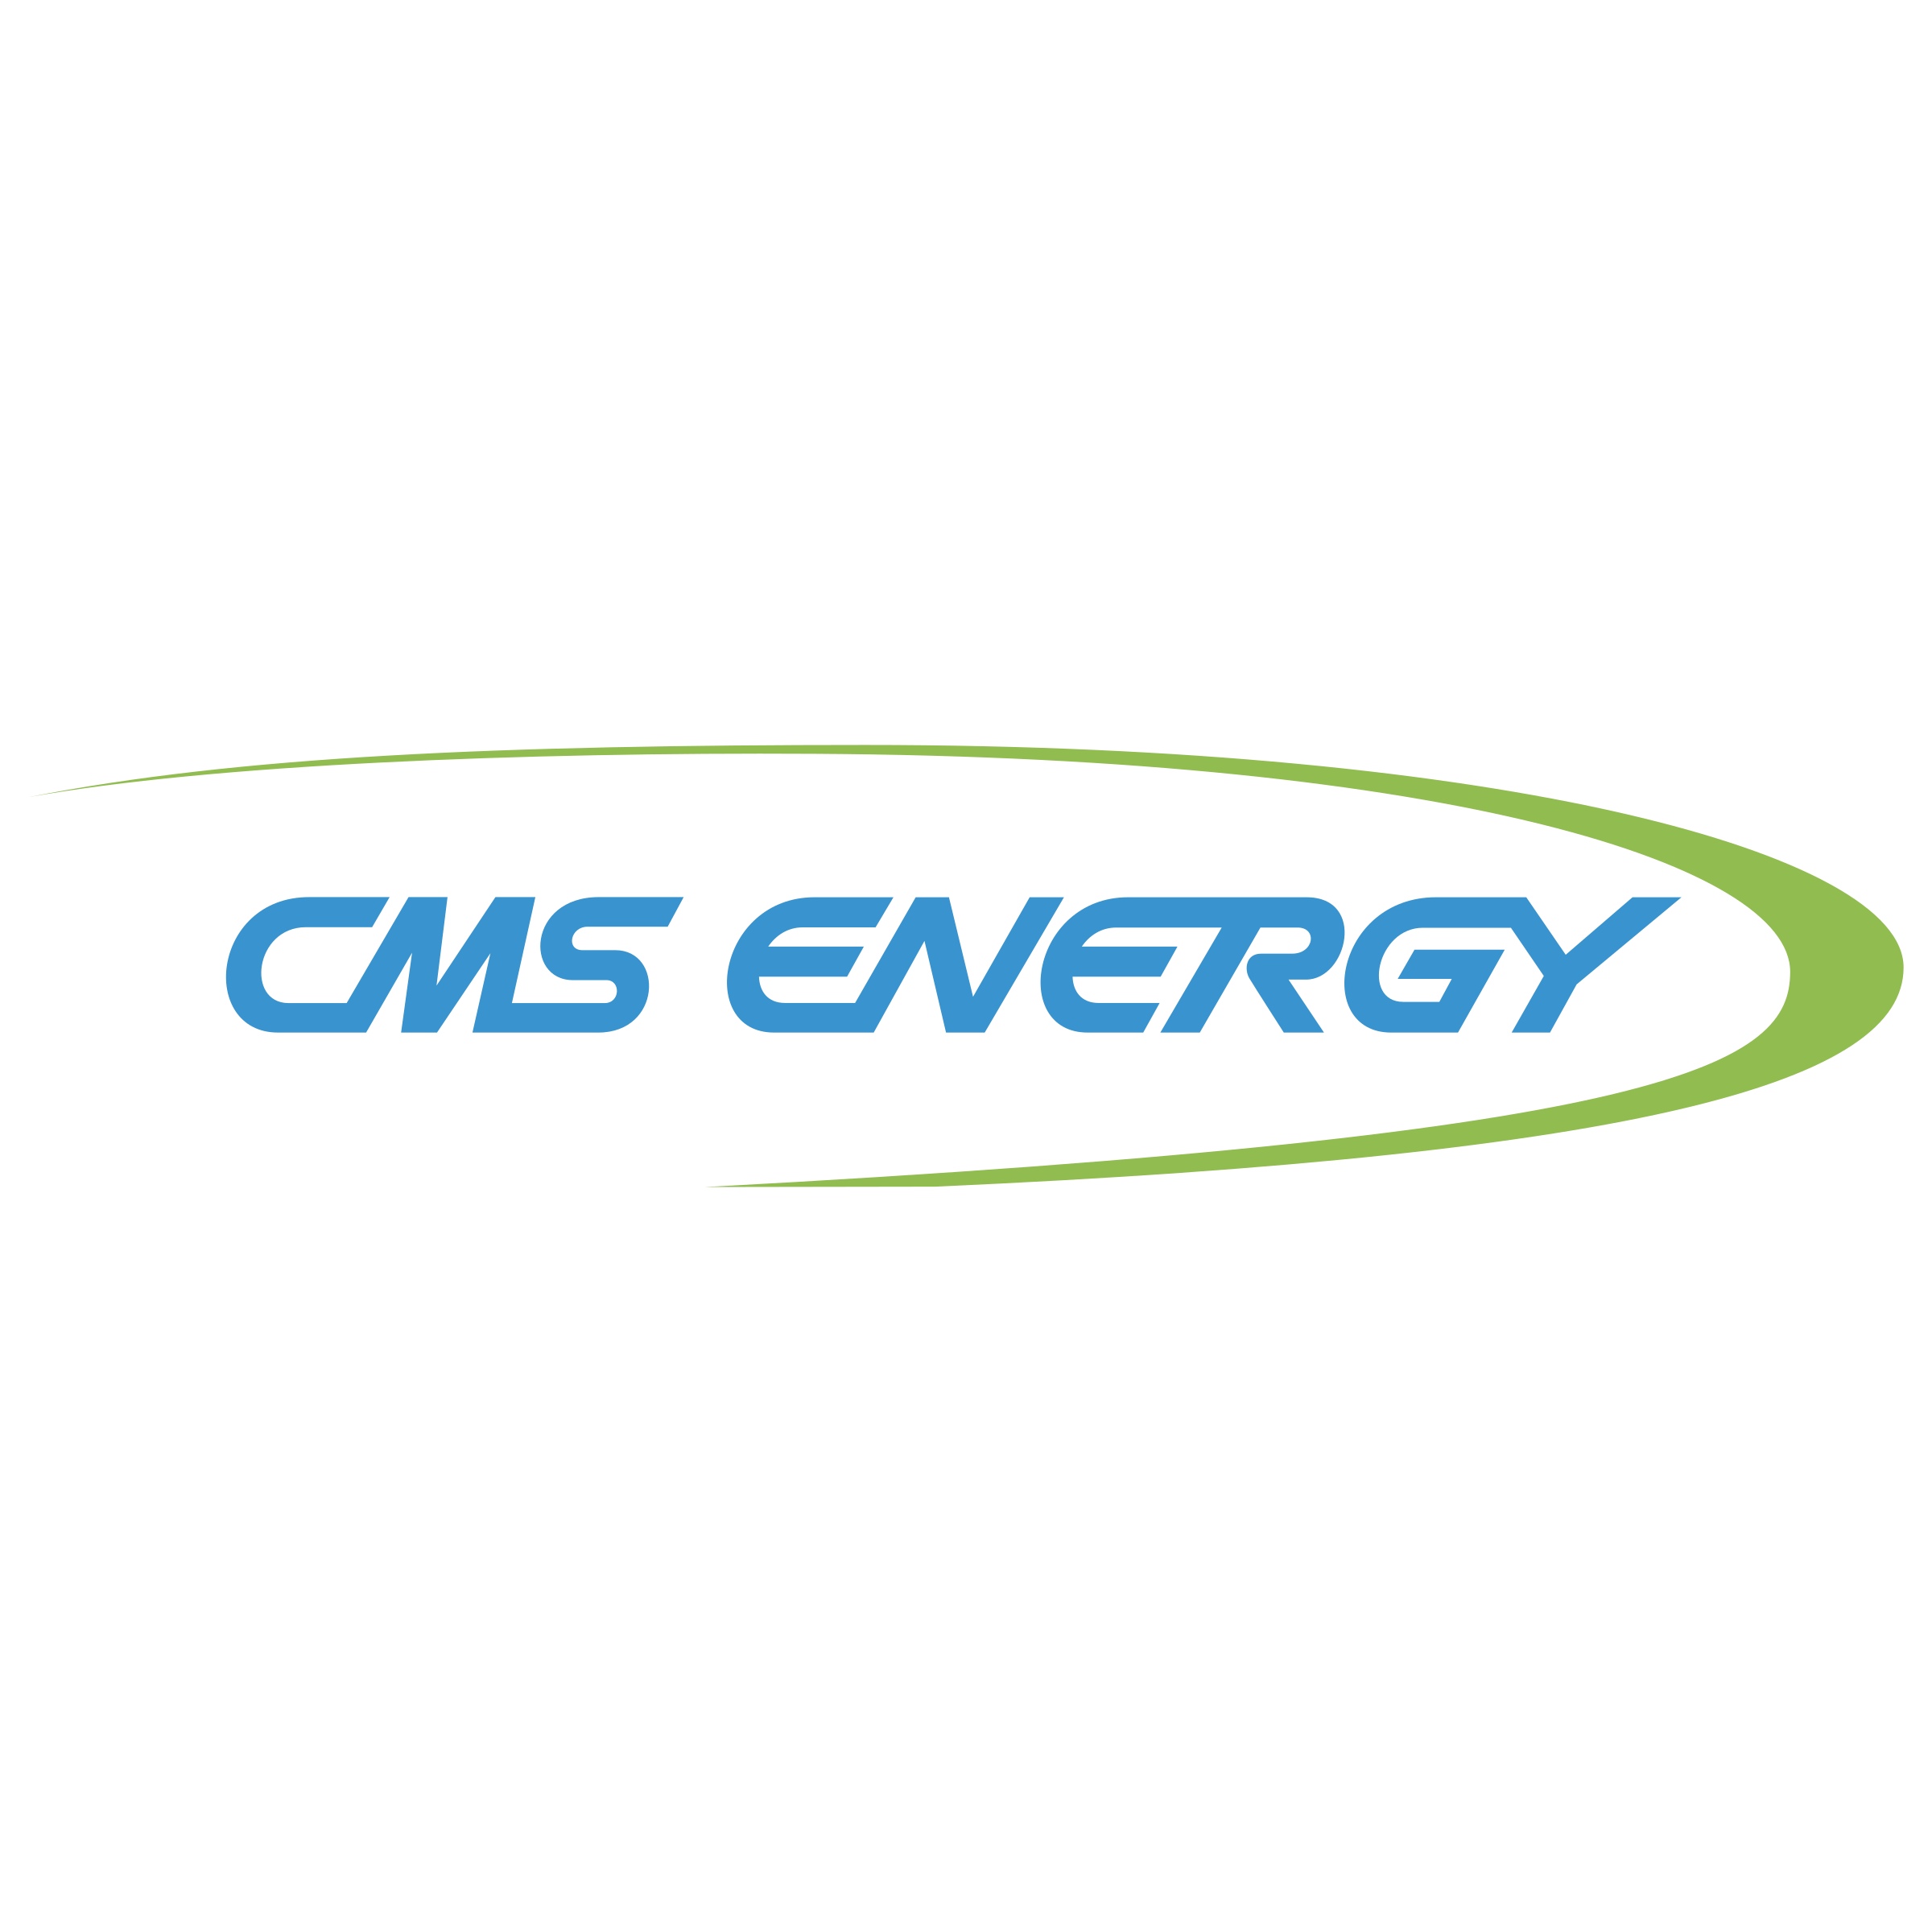 CMS Energy Logo PNG Transparent & SVG Vector